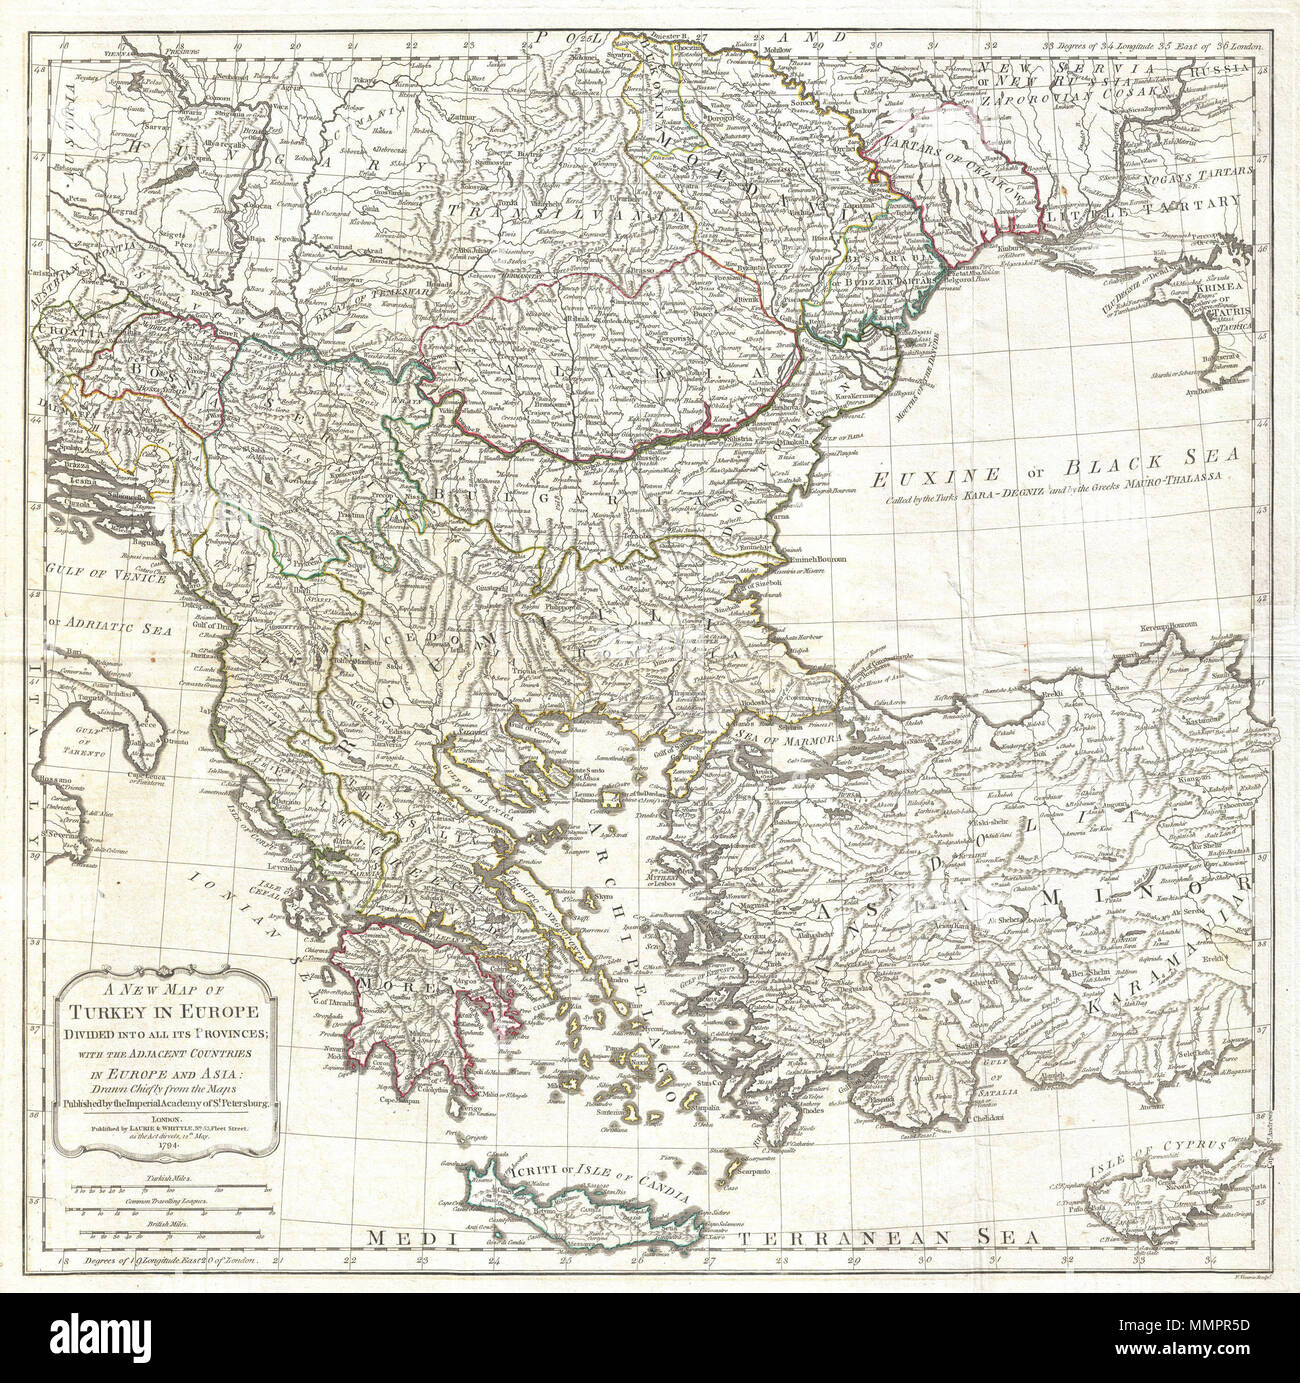 Large Map Of Italy With Regions.English An Extraordinary Large Format 1794 Map Of Greece Turkey In